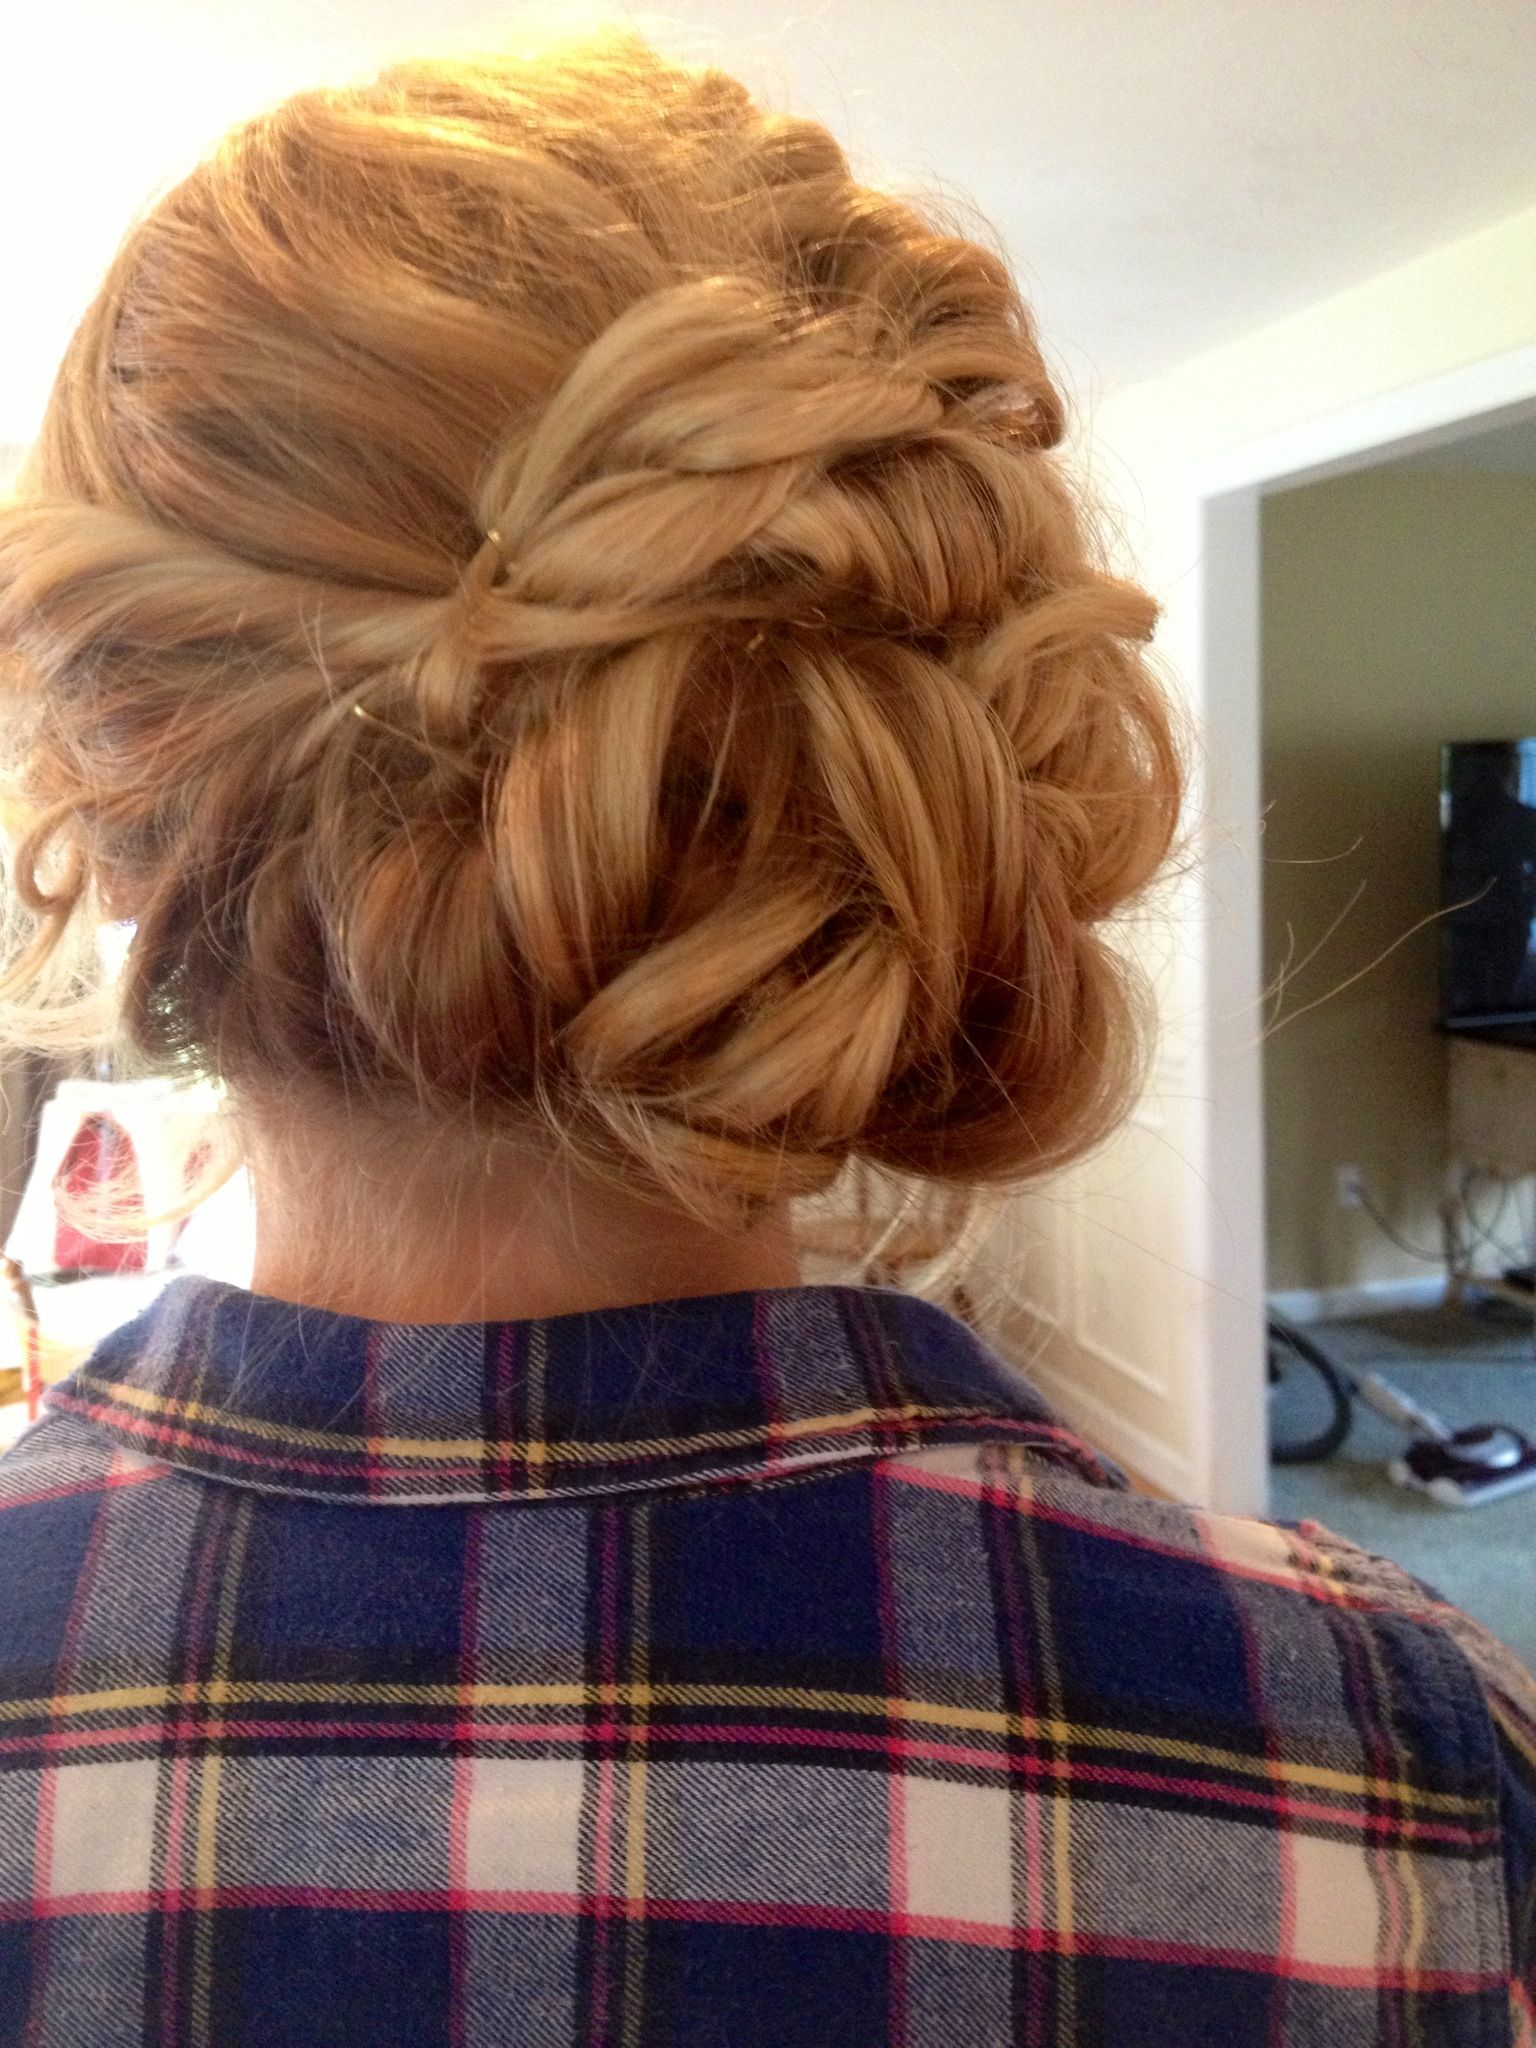 Blonde up do for prom | Hair, Formal hairstyles, Long hair ...